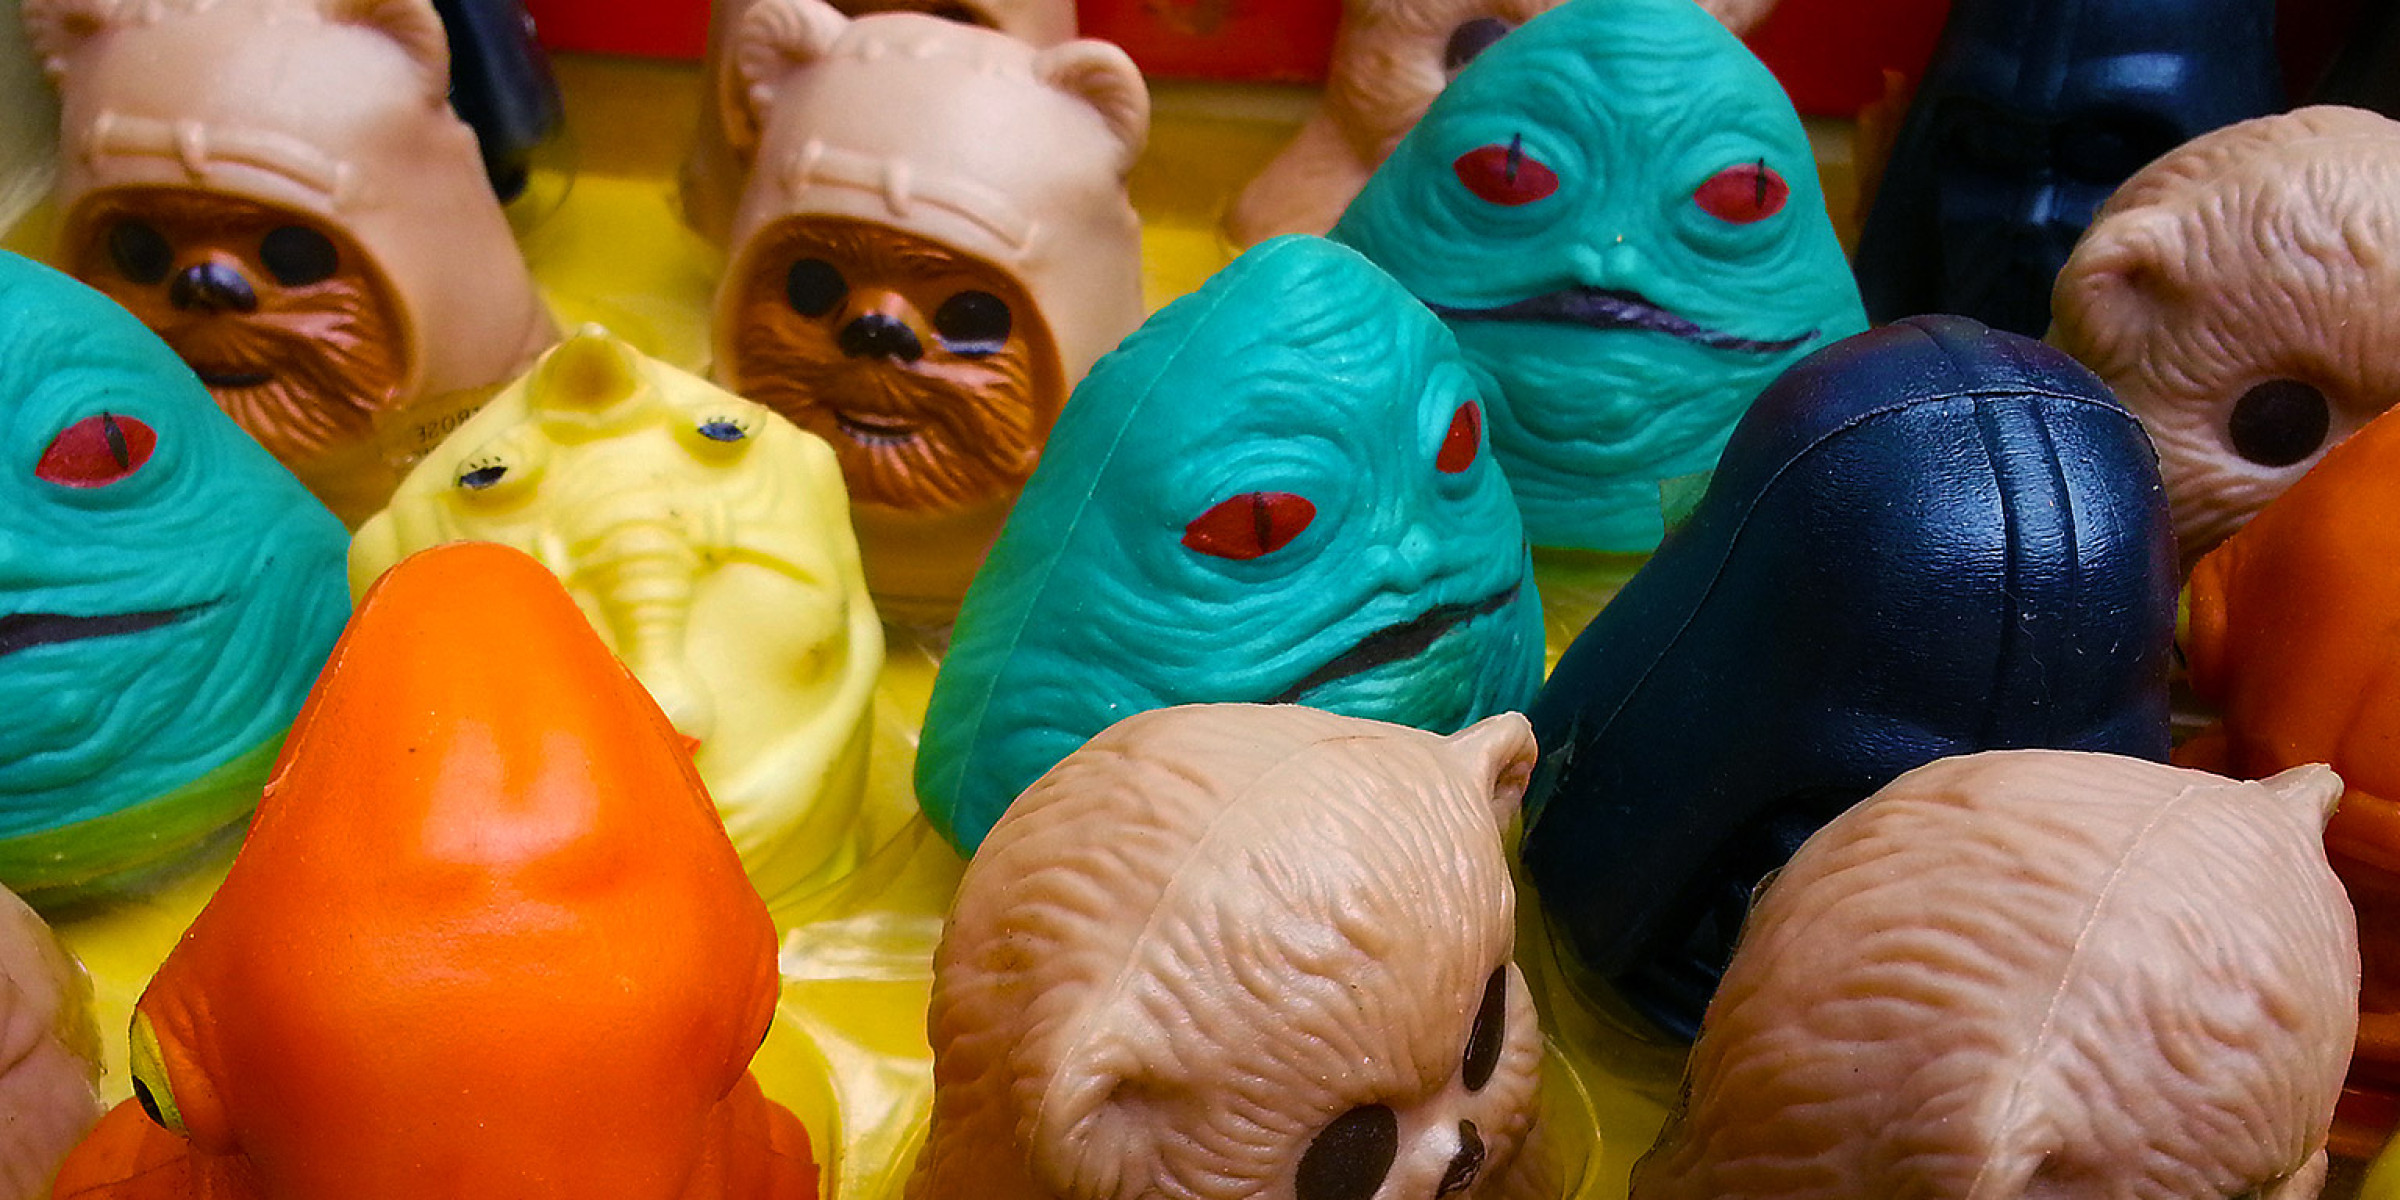 Return of the Jedi candy heads